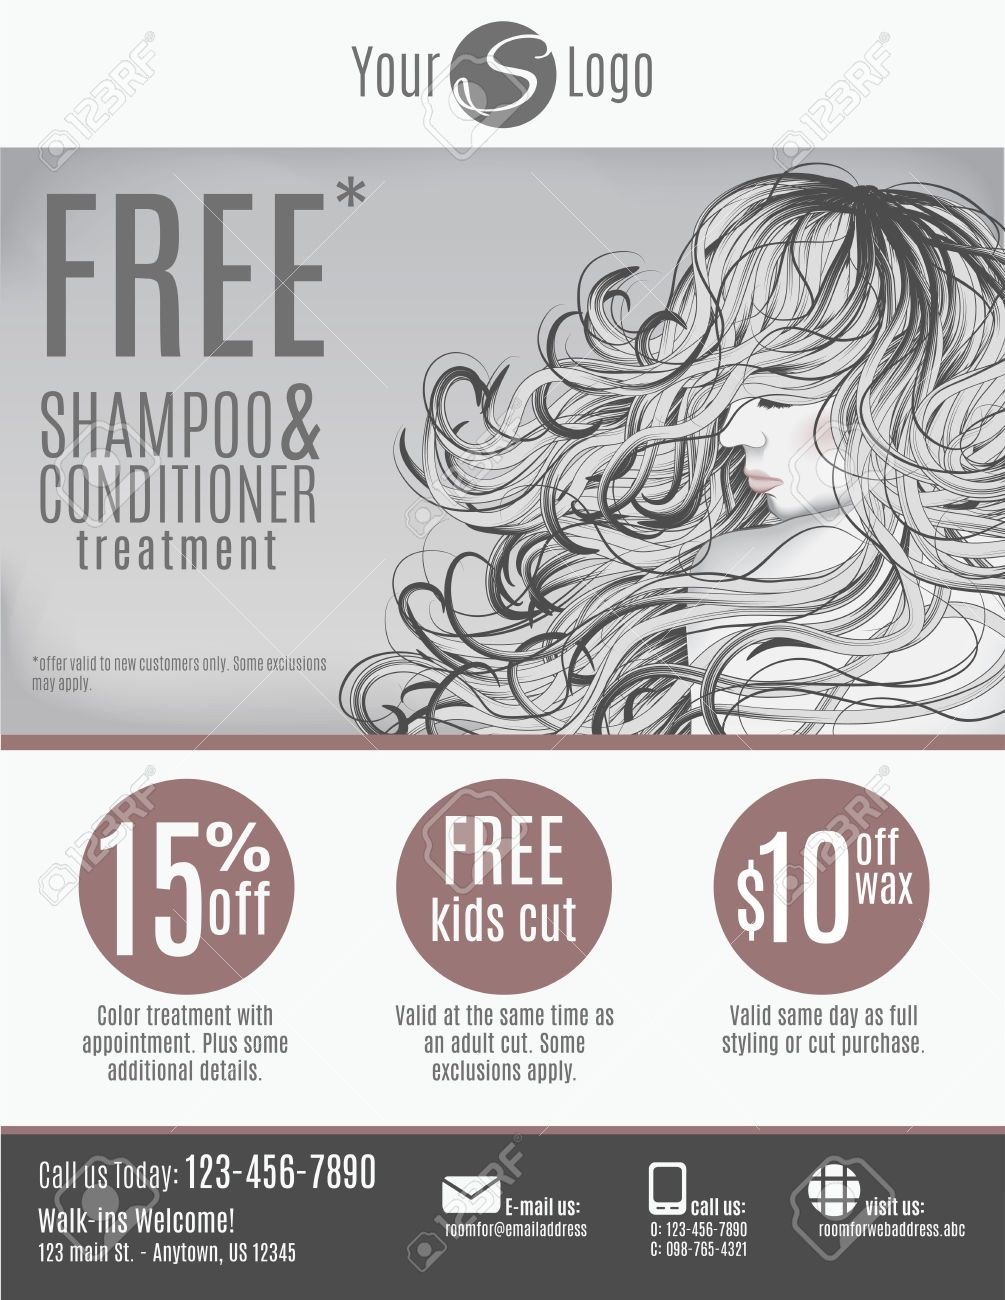 hair salon advertising flyers - Google Search  Salon de belleza